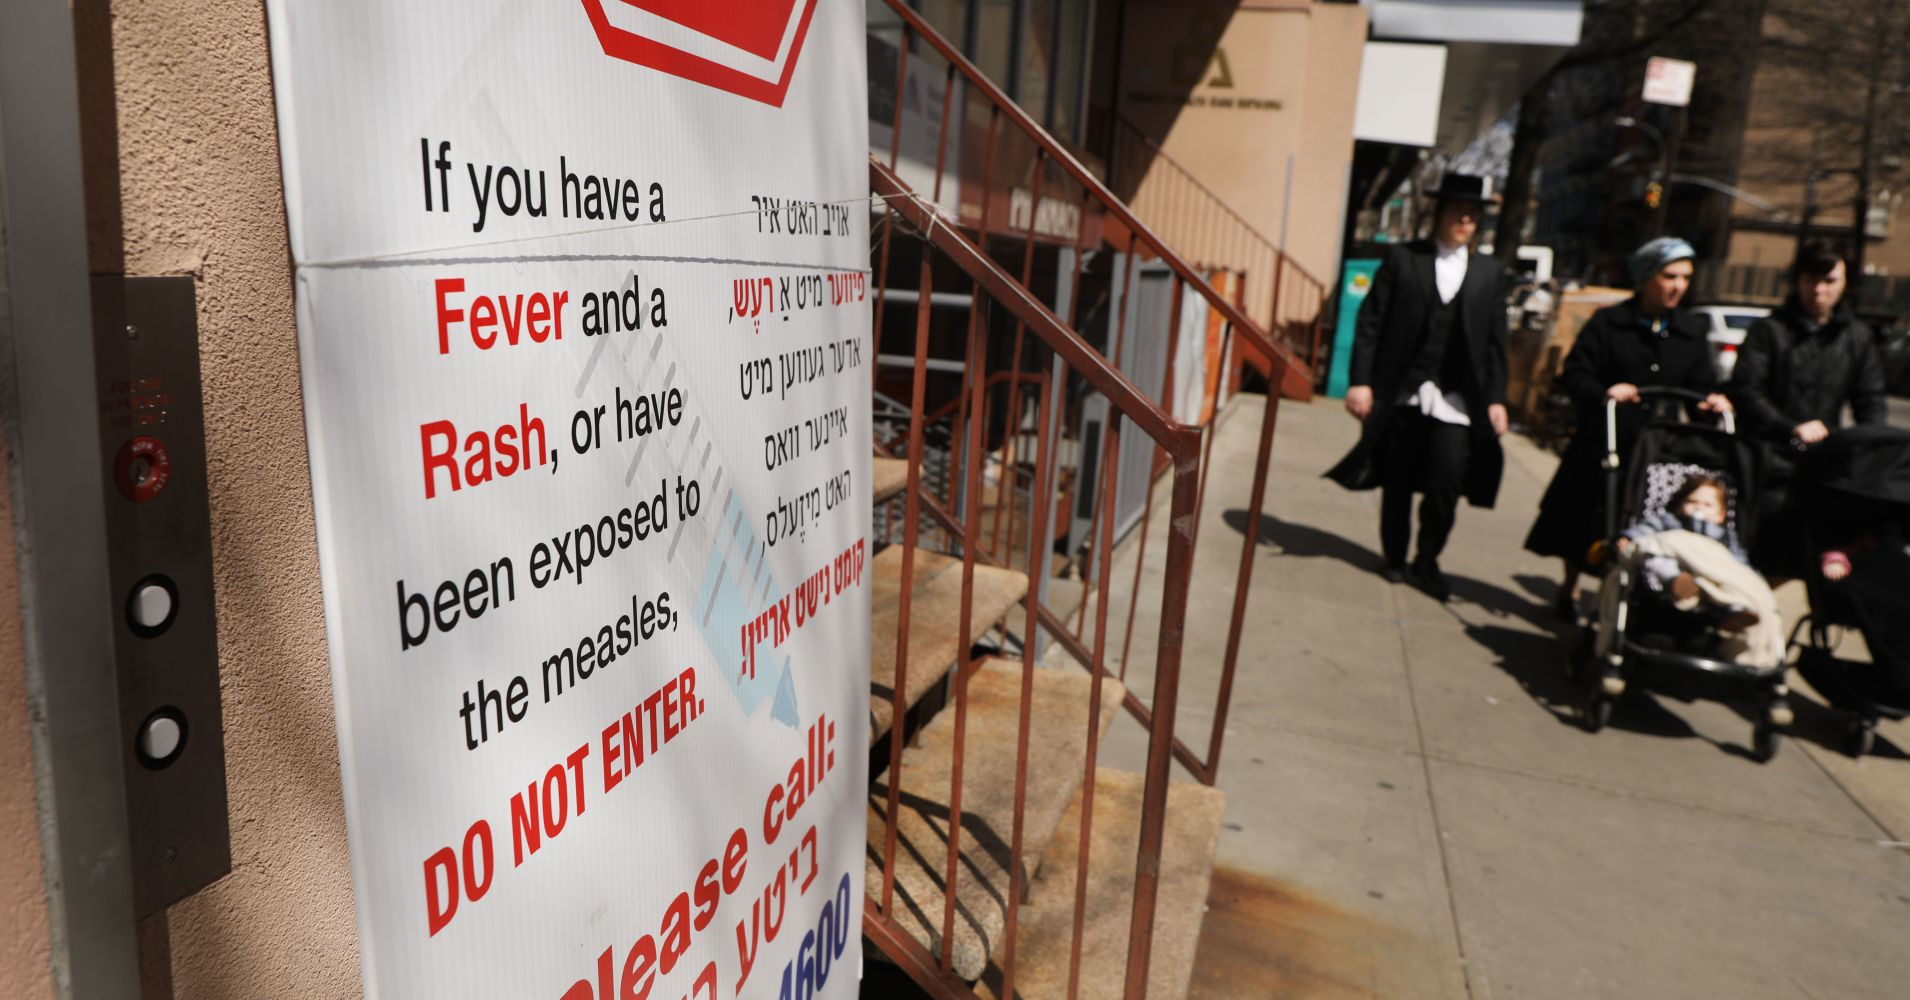 A sign warns people of measles in the ultra-Orthodox Jewish community in Williamsburg on April 10, 2019 in New York City.